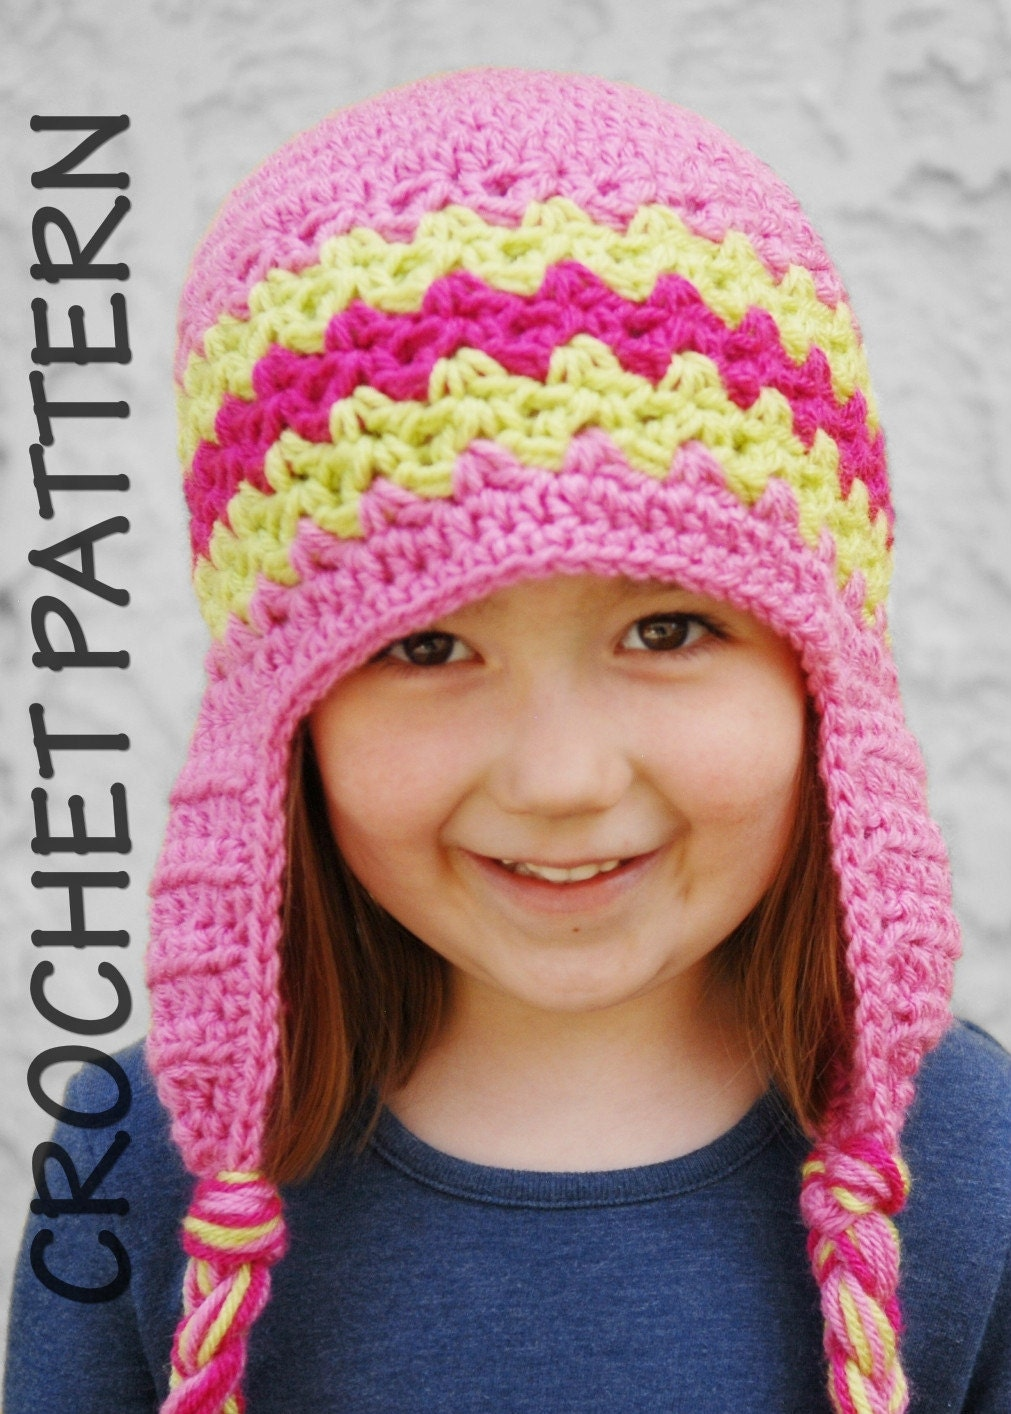 Crochet Patterns Free Childrens Hats : CROCHET PATTERNS KIDS HATS ? Crochet For Beginners